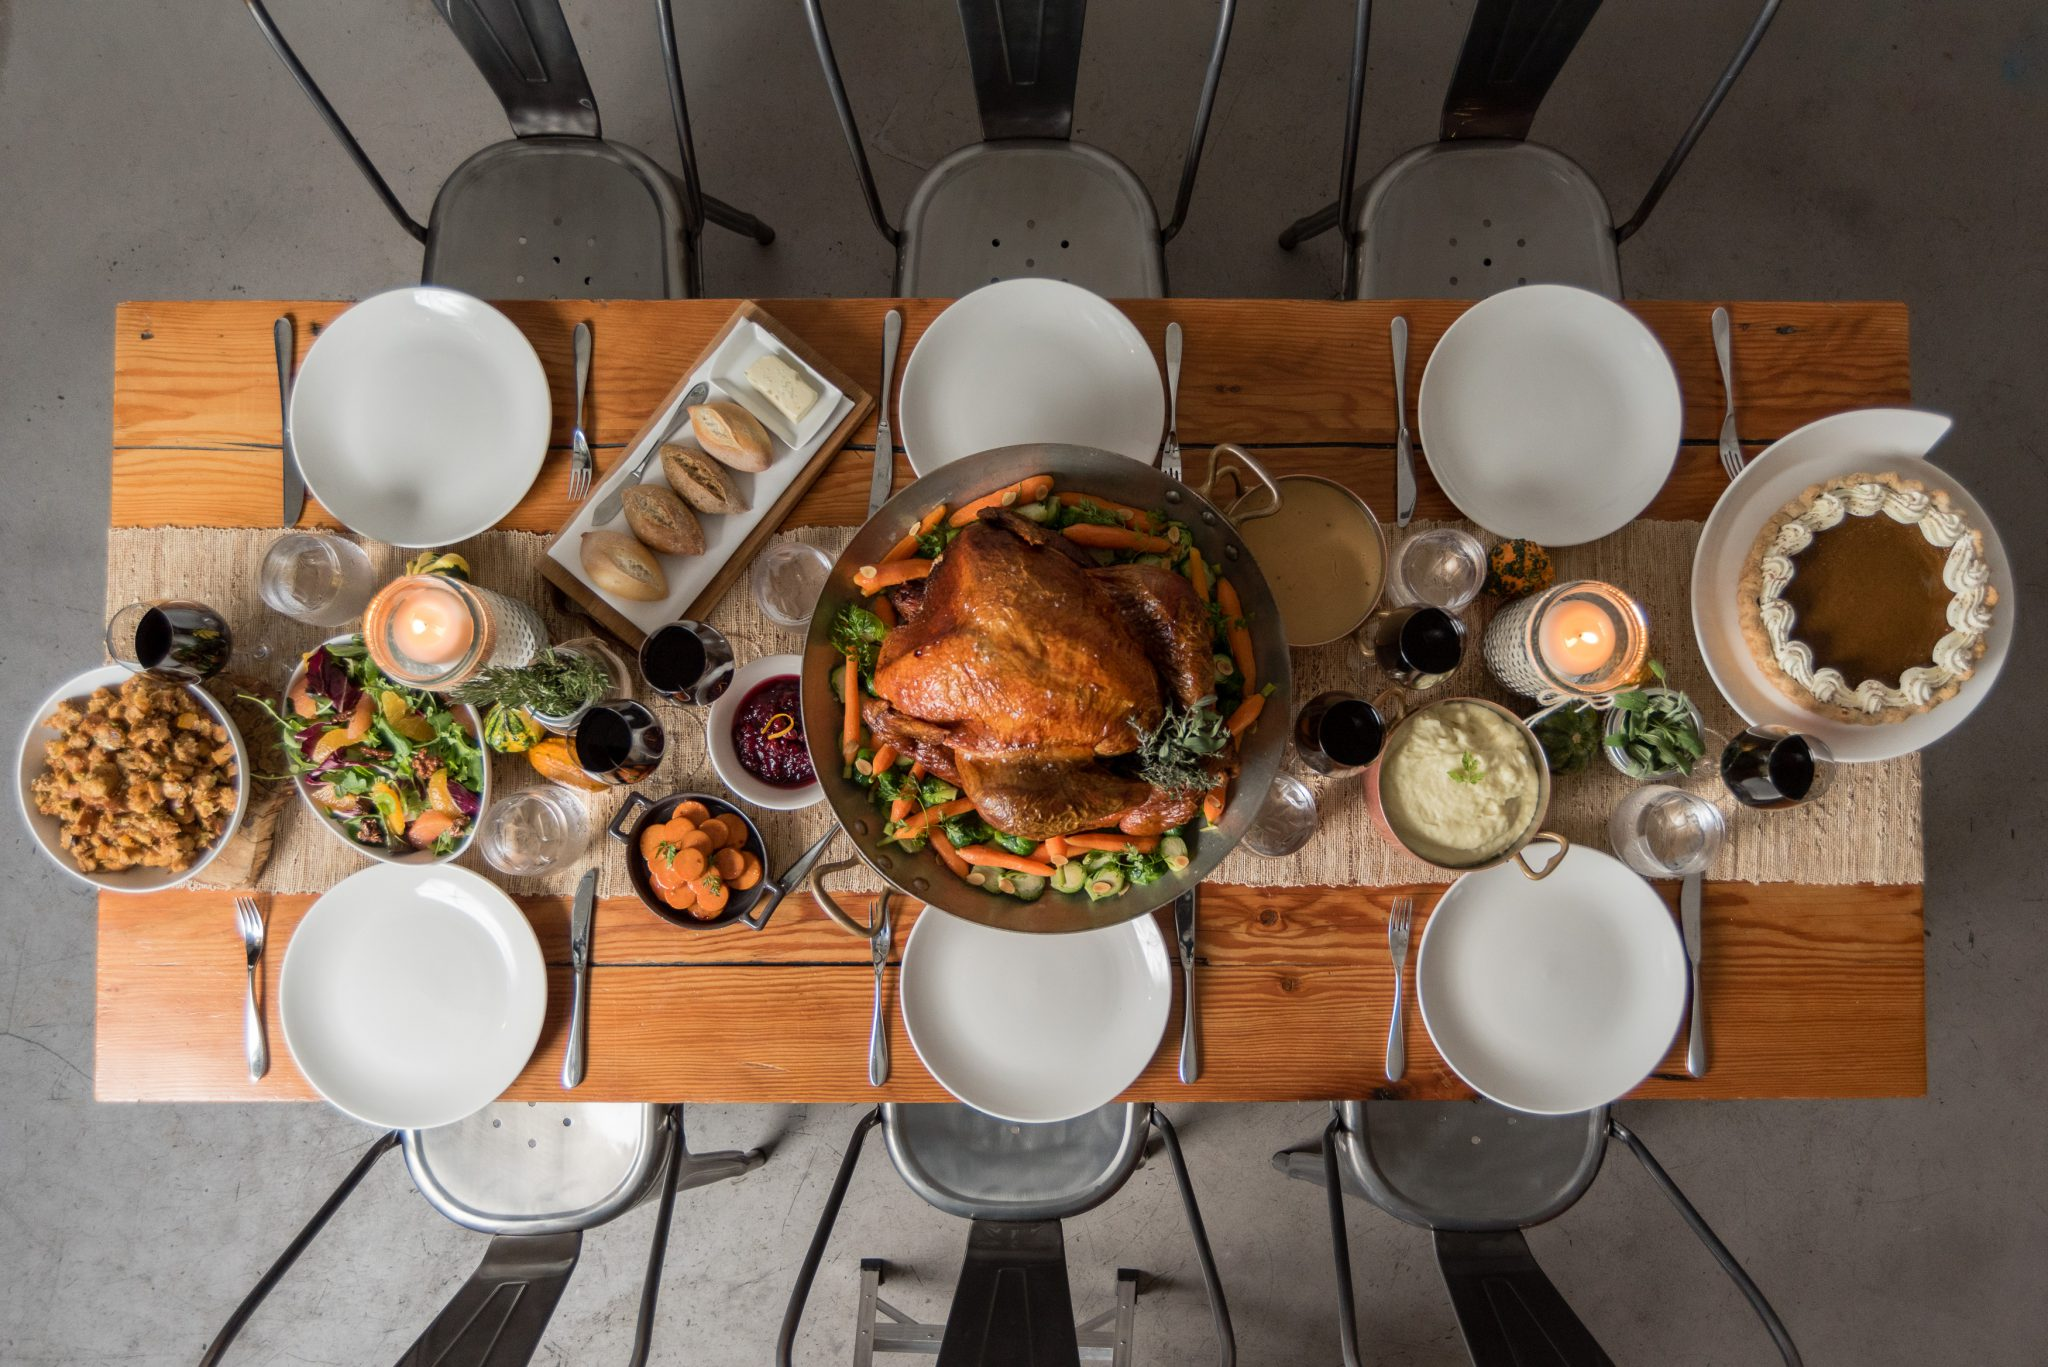 TURKEY TIME: RAILTOWN CATERING ANNOUNCES RETURN OF POPULAR THANKSGIVING TO-GO PACKAGE